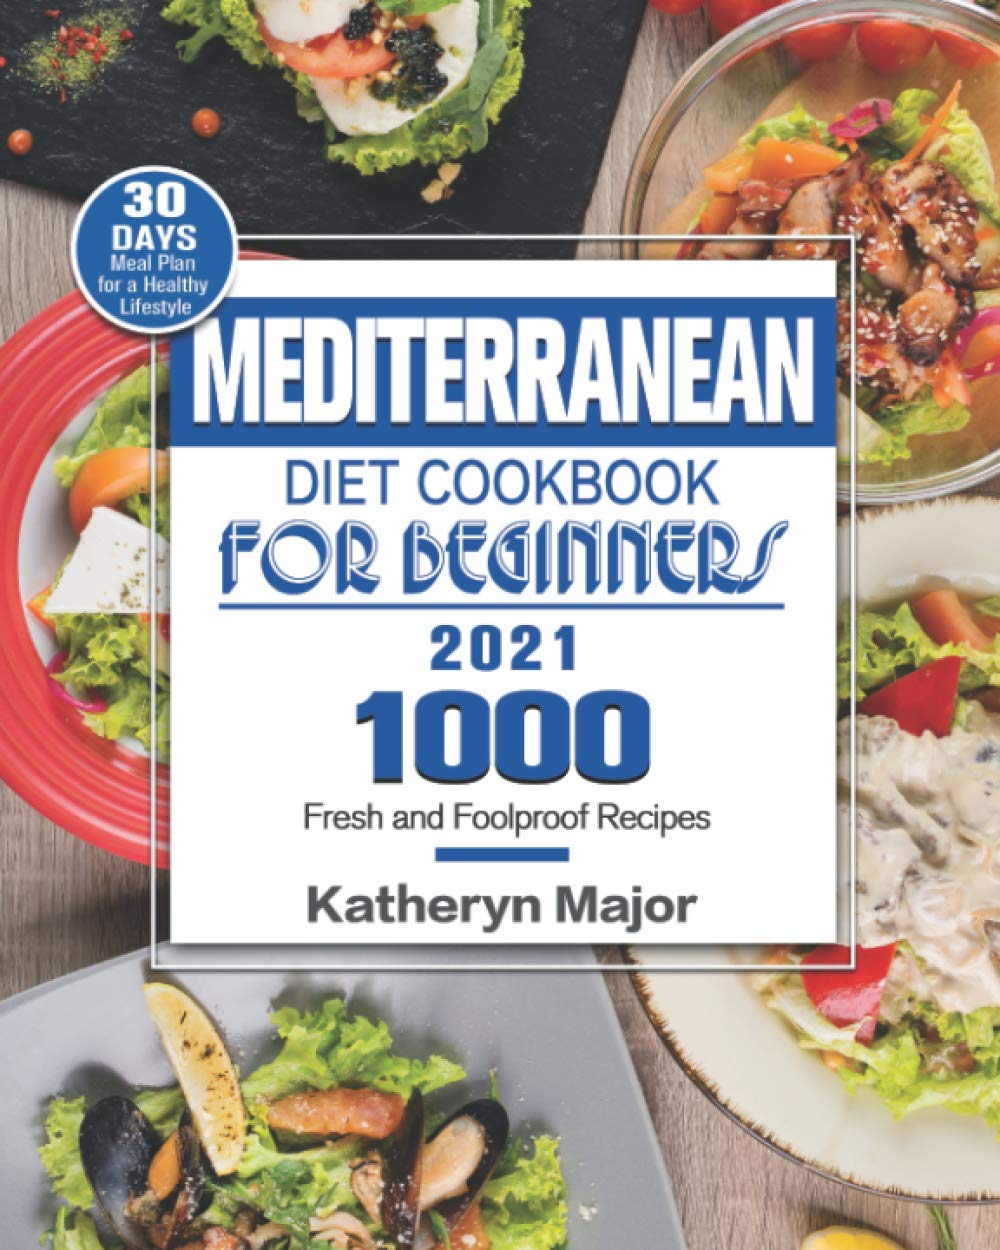 Mediterranean Diet Cookbook For Beginners 2021: 1000 Fresh and Foolproof Recipes with 30-Day Meal Plan for a Healthy Lifestyle 1